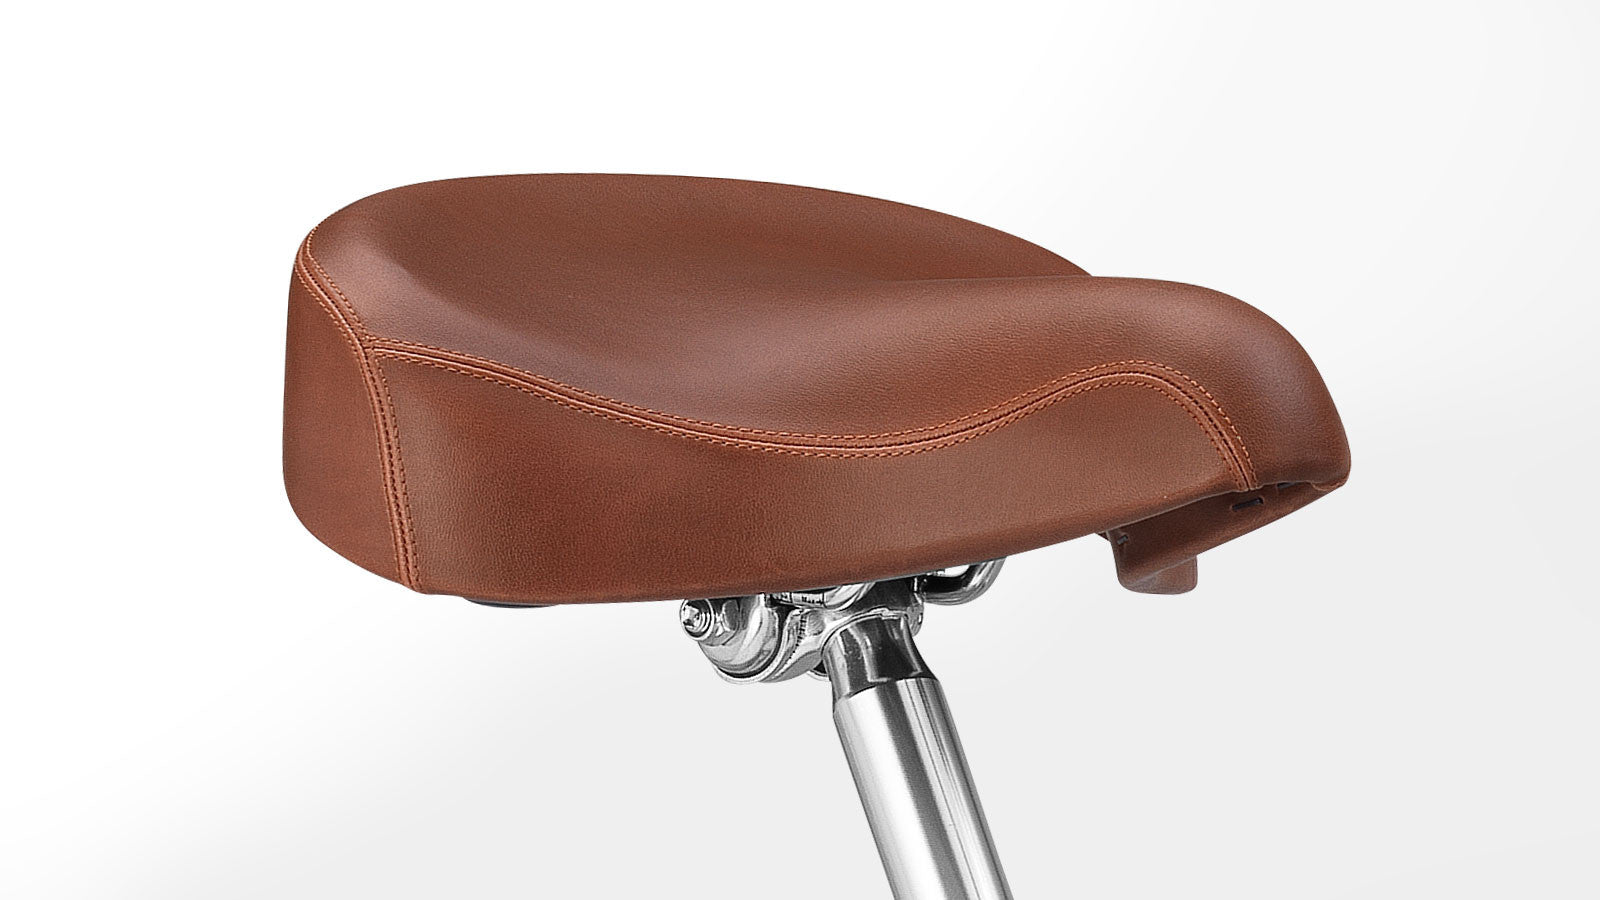 How To Choose The Right Size Beach Cruiser Bike Seat